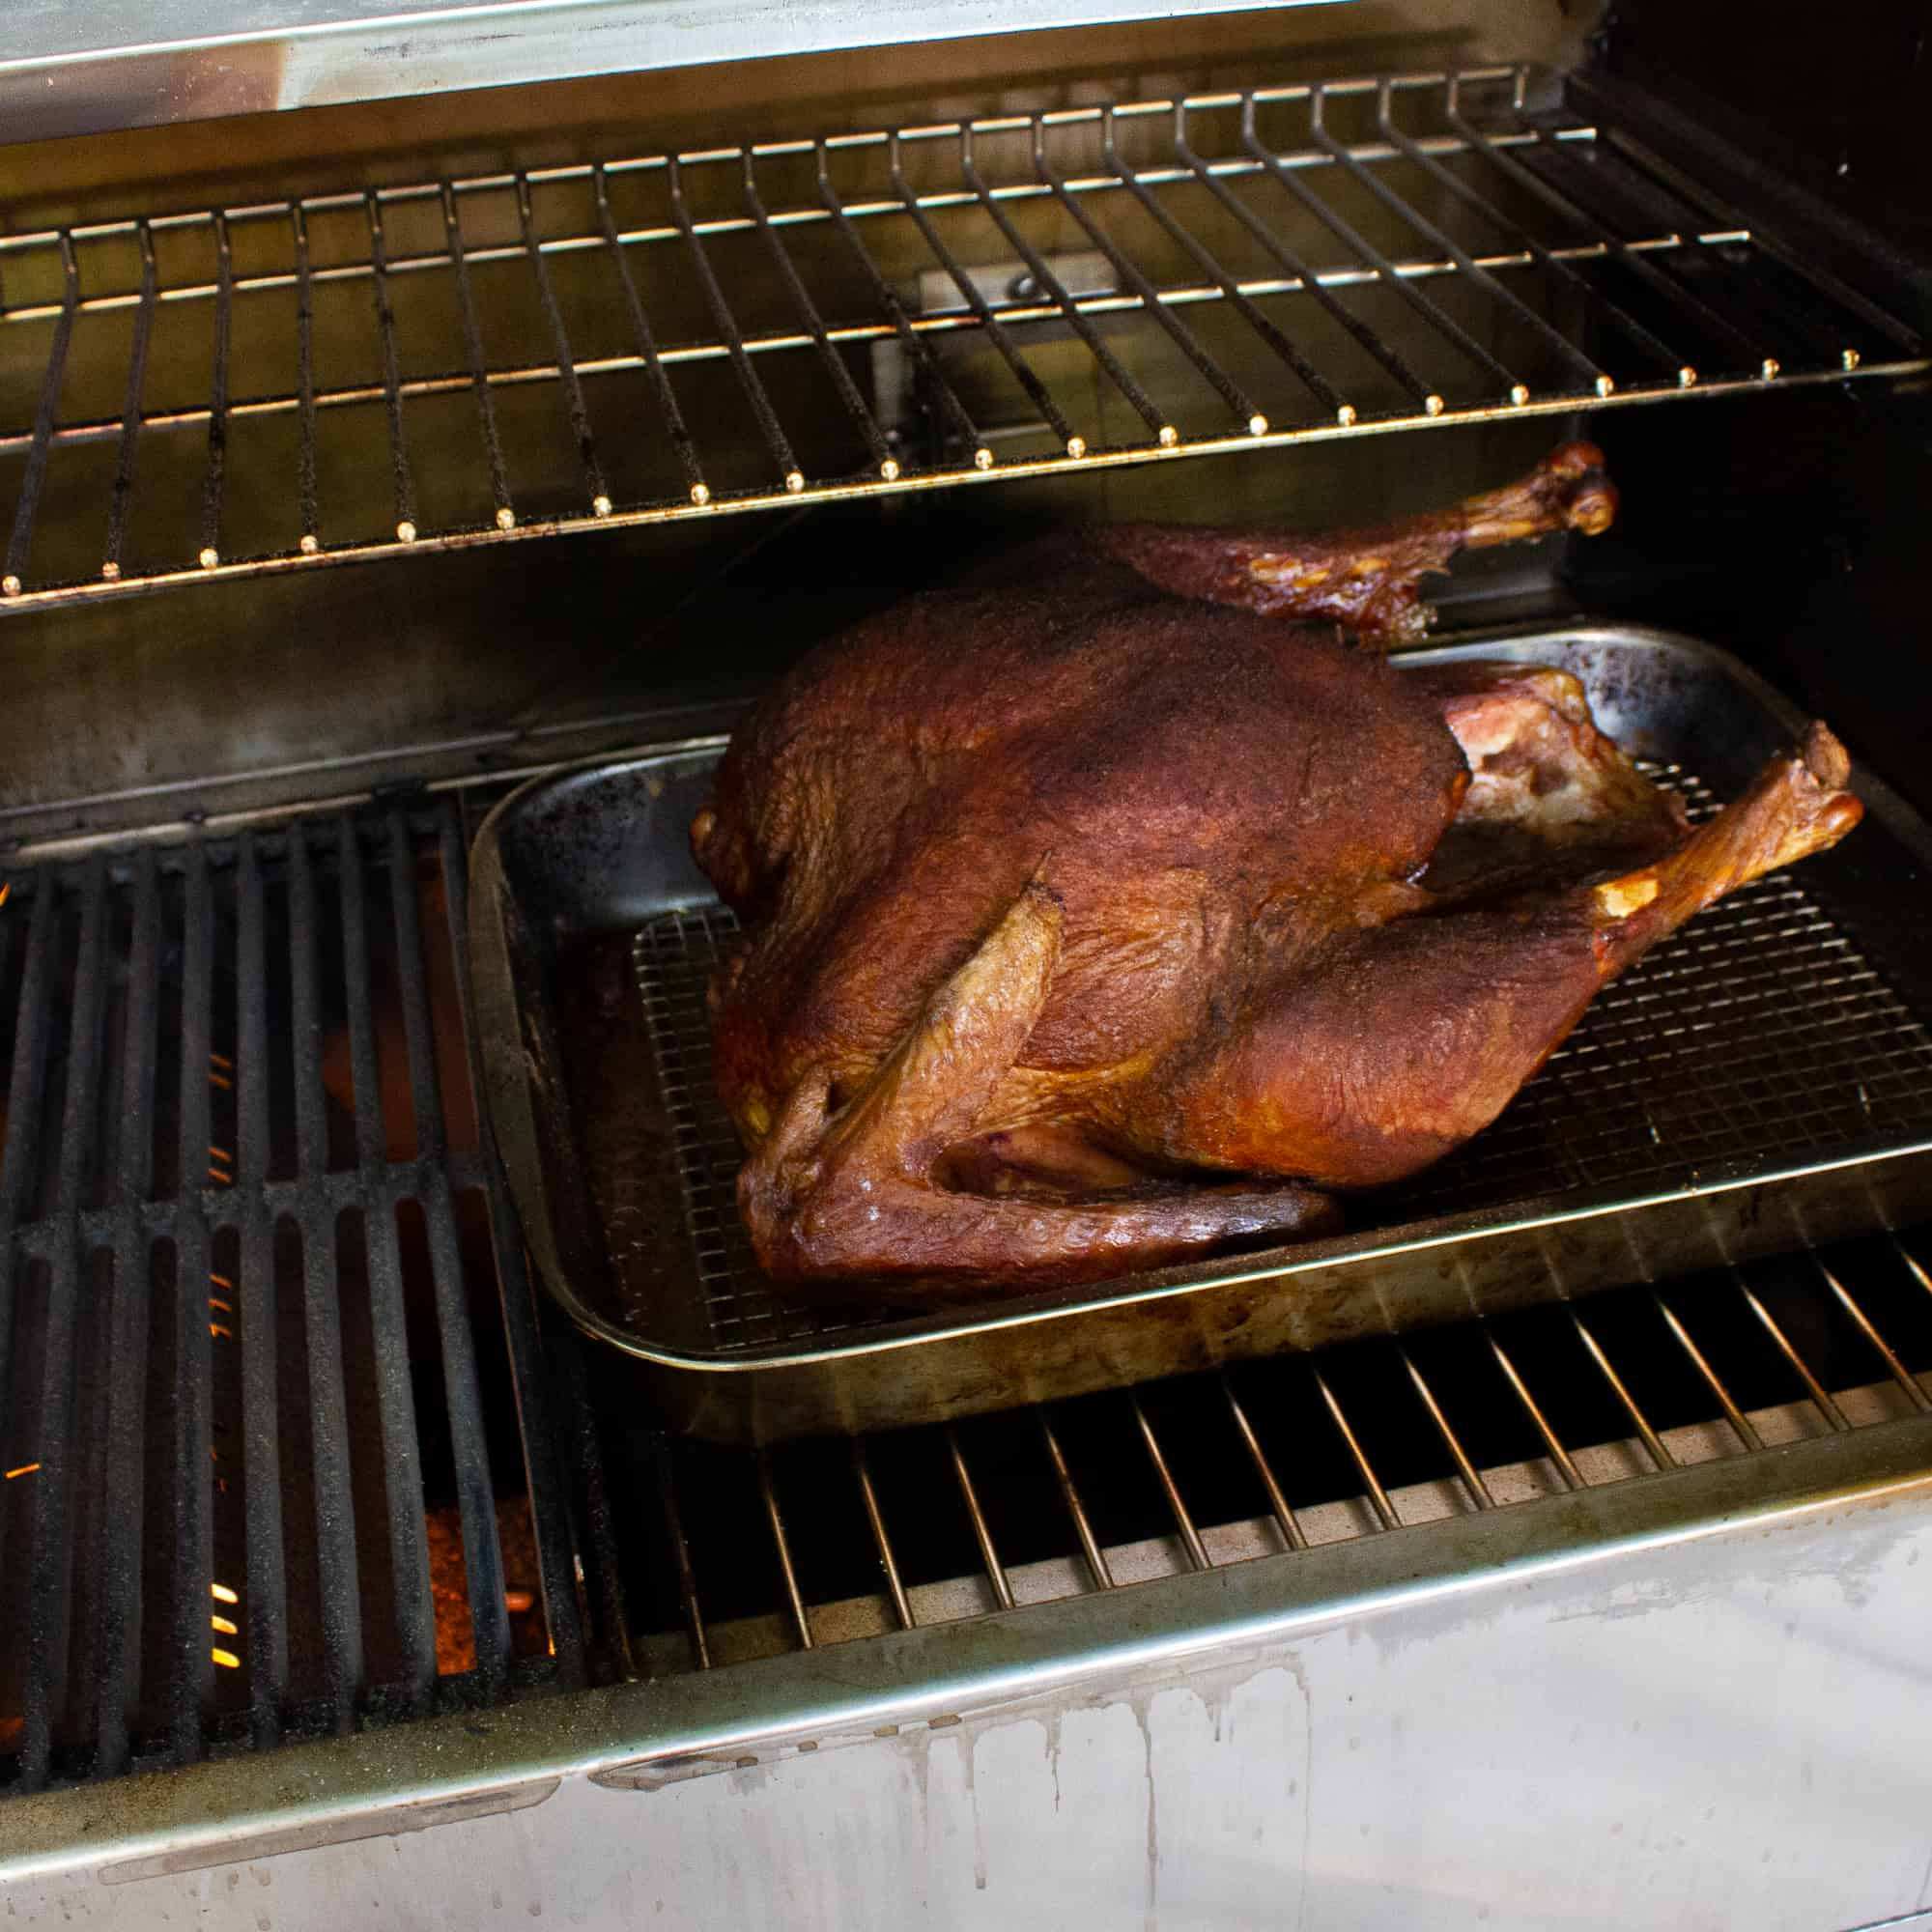 Grilling a turkey is an excellent way to cook the thanksgiving bird. Great recipe for wood, charcoal and gas grills to cook using indirect grilling.